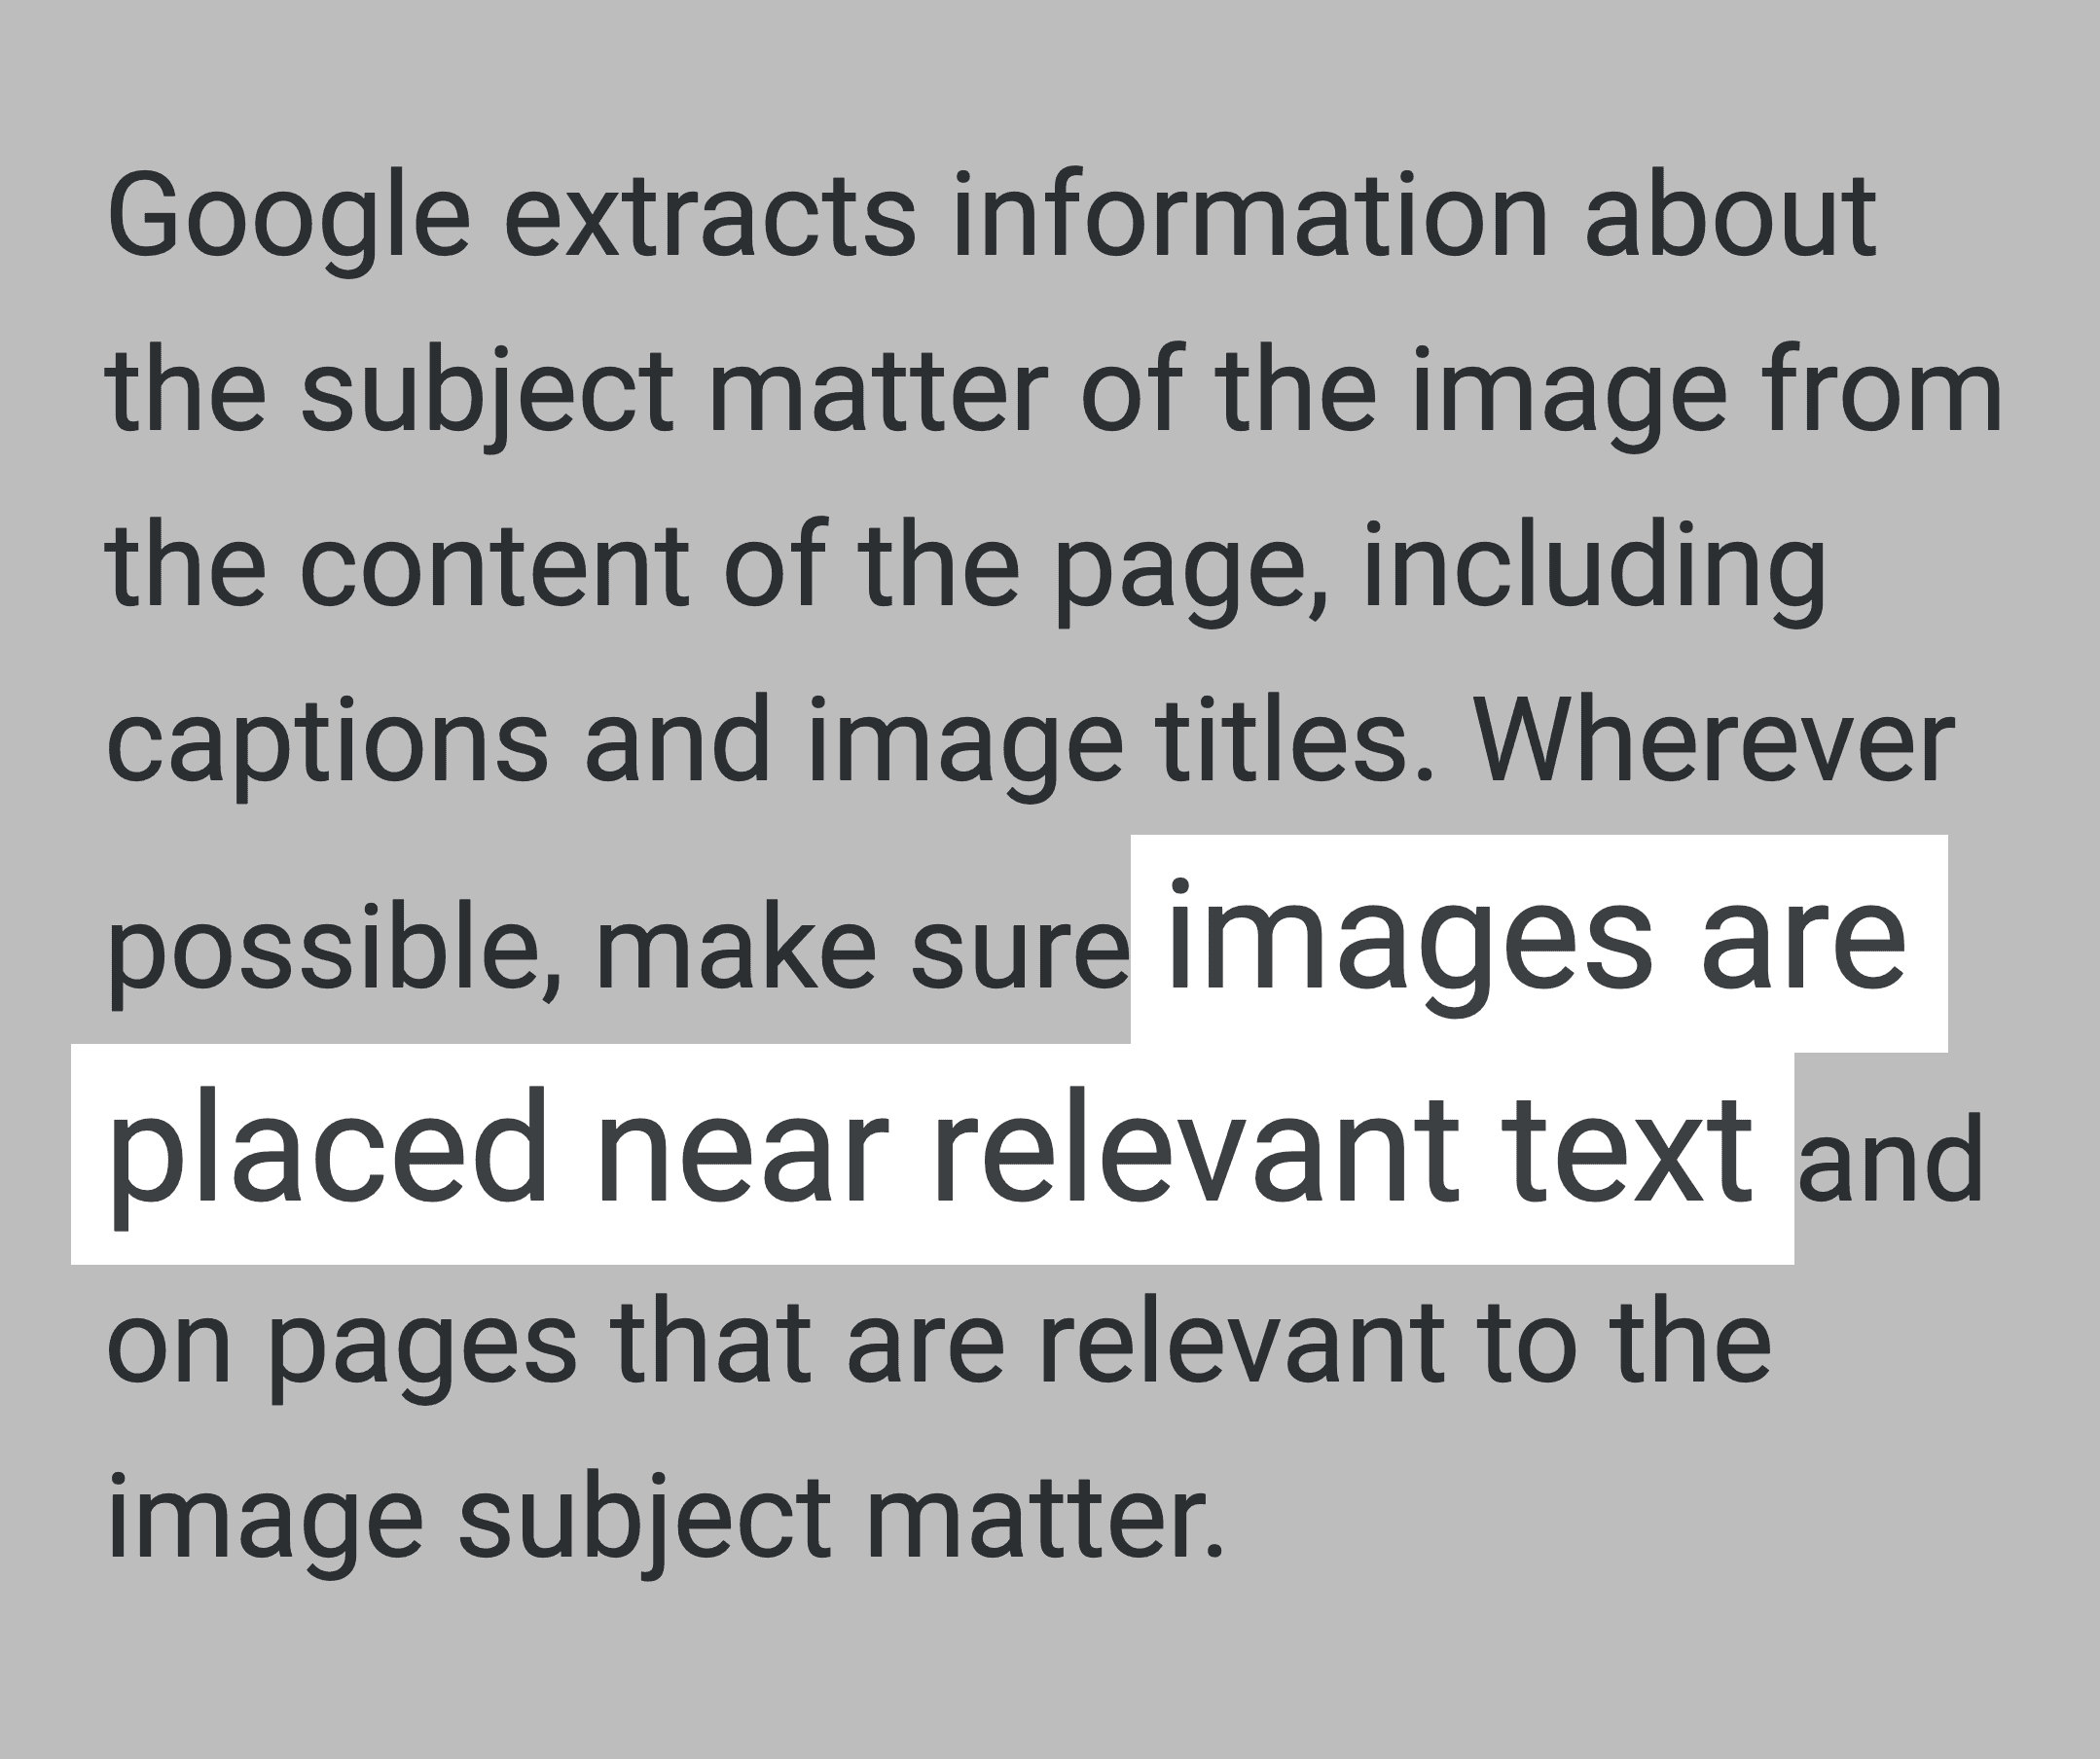 Google Blog – Images Placed Near Relevant Text